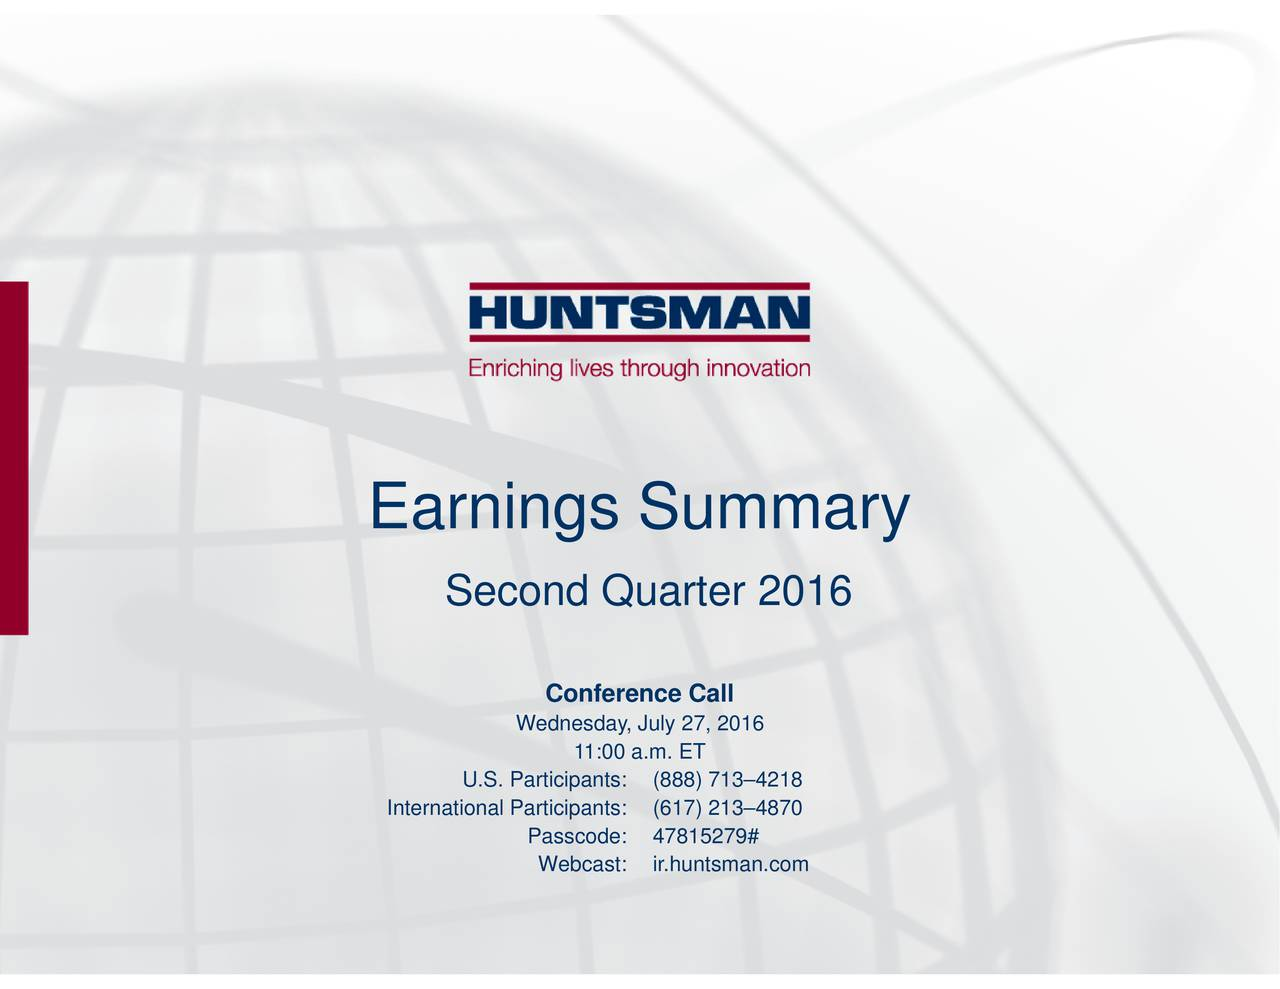 Conference CaWebcast: ir.huntsman.com Wednesday, July 27, 2016279# U.S. Participan(888) 7134218 Second Quarter 2016 International Partici(617) 2134870 Earnings Summary